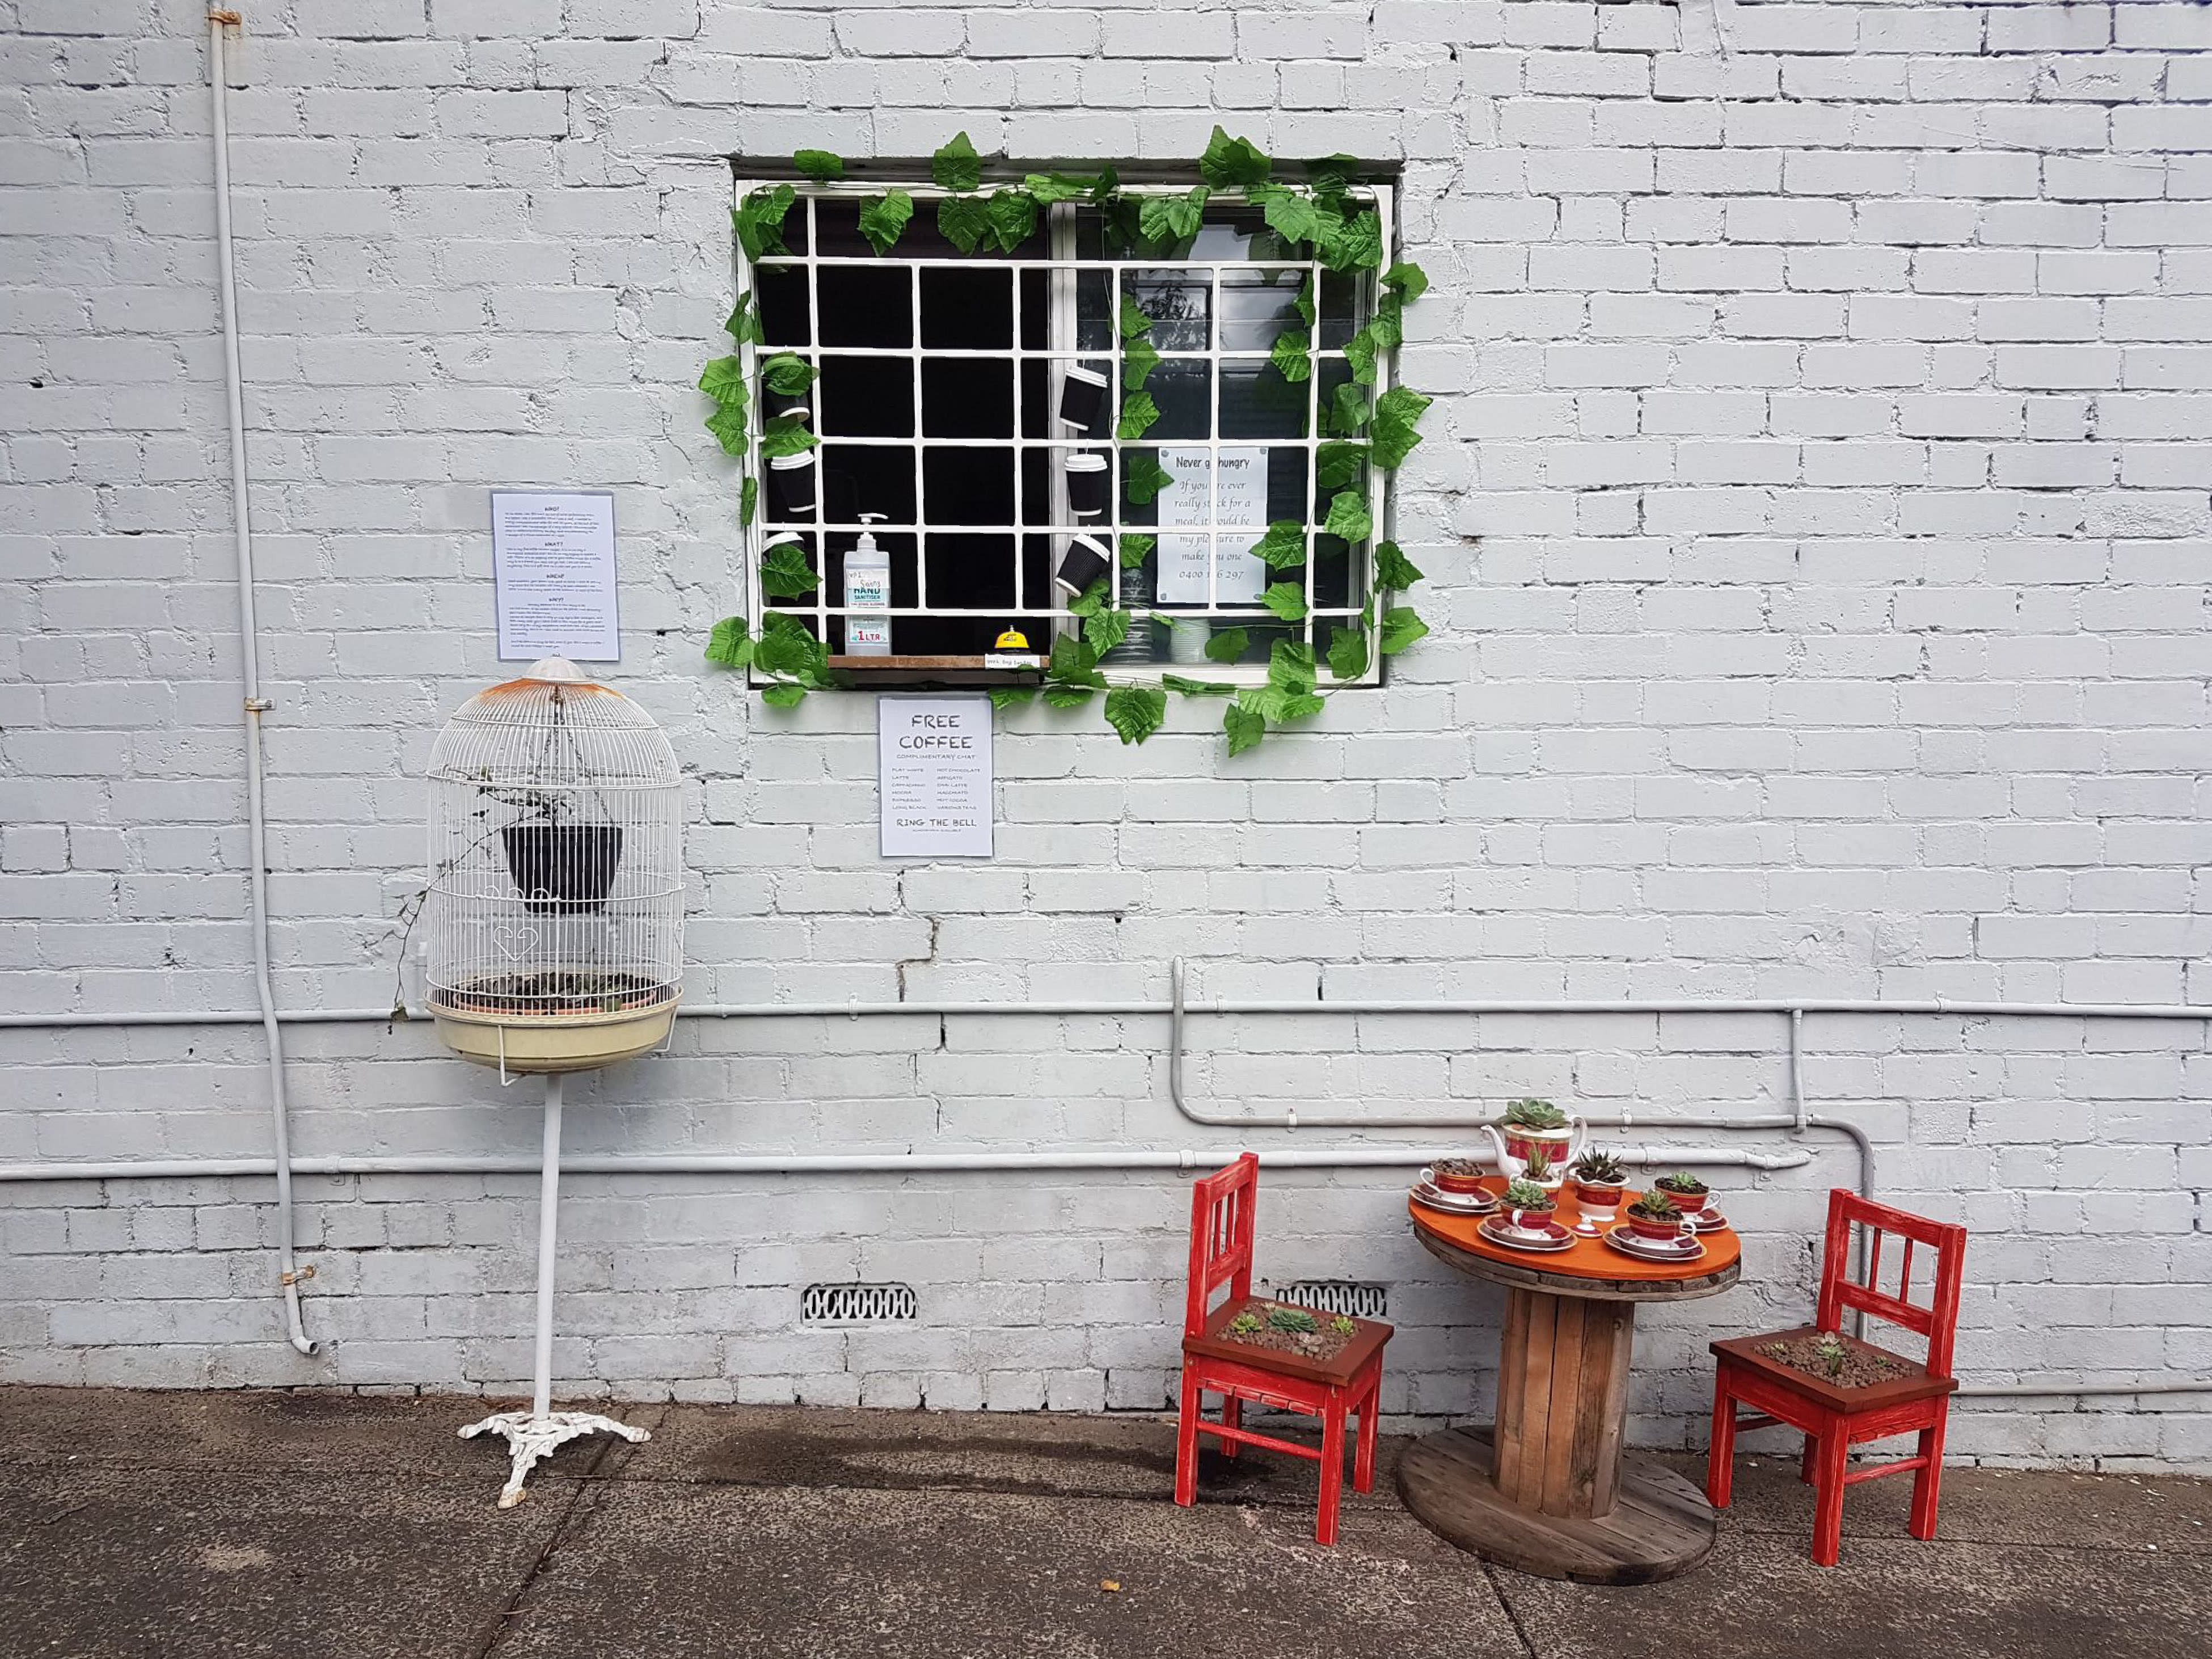 In this July 25, 2020 photo provided by Rick Everett, a small table decorated with succulents sits below a window where Everett offers free coffee and conversation to friends and neighbors at his home in Sydney, Australia, during the coronavirus pandemic. (Rick Everett via AP)